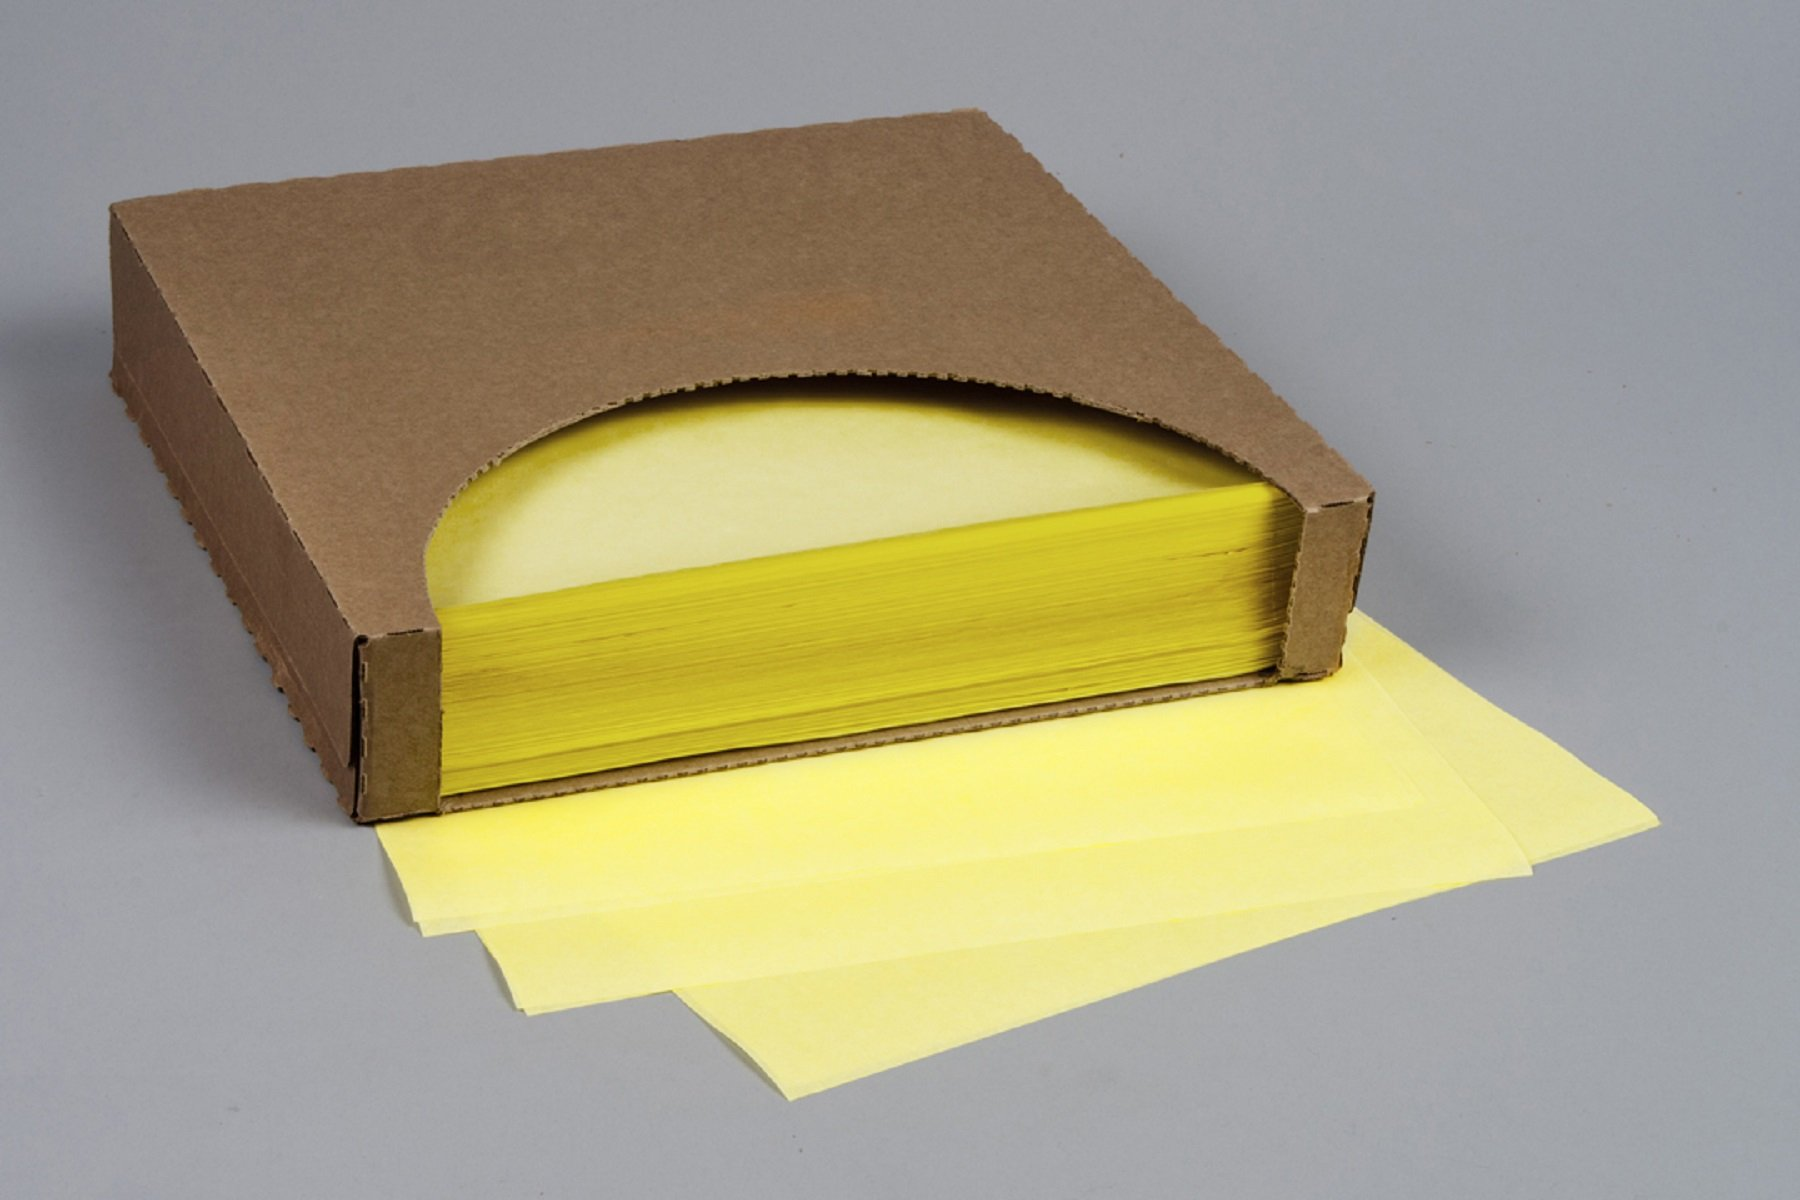 12x12 Waxed Paper Wrap or Basket Liner Sheet, CANARY YELLOW Color, 1000 Sheets Per Box, 7B4-YC by Brown Paper Goods